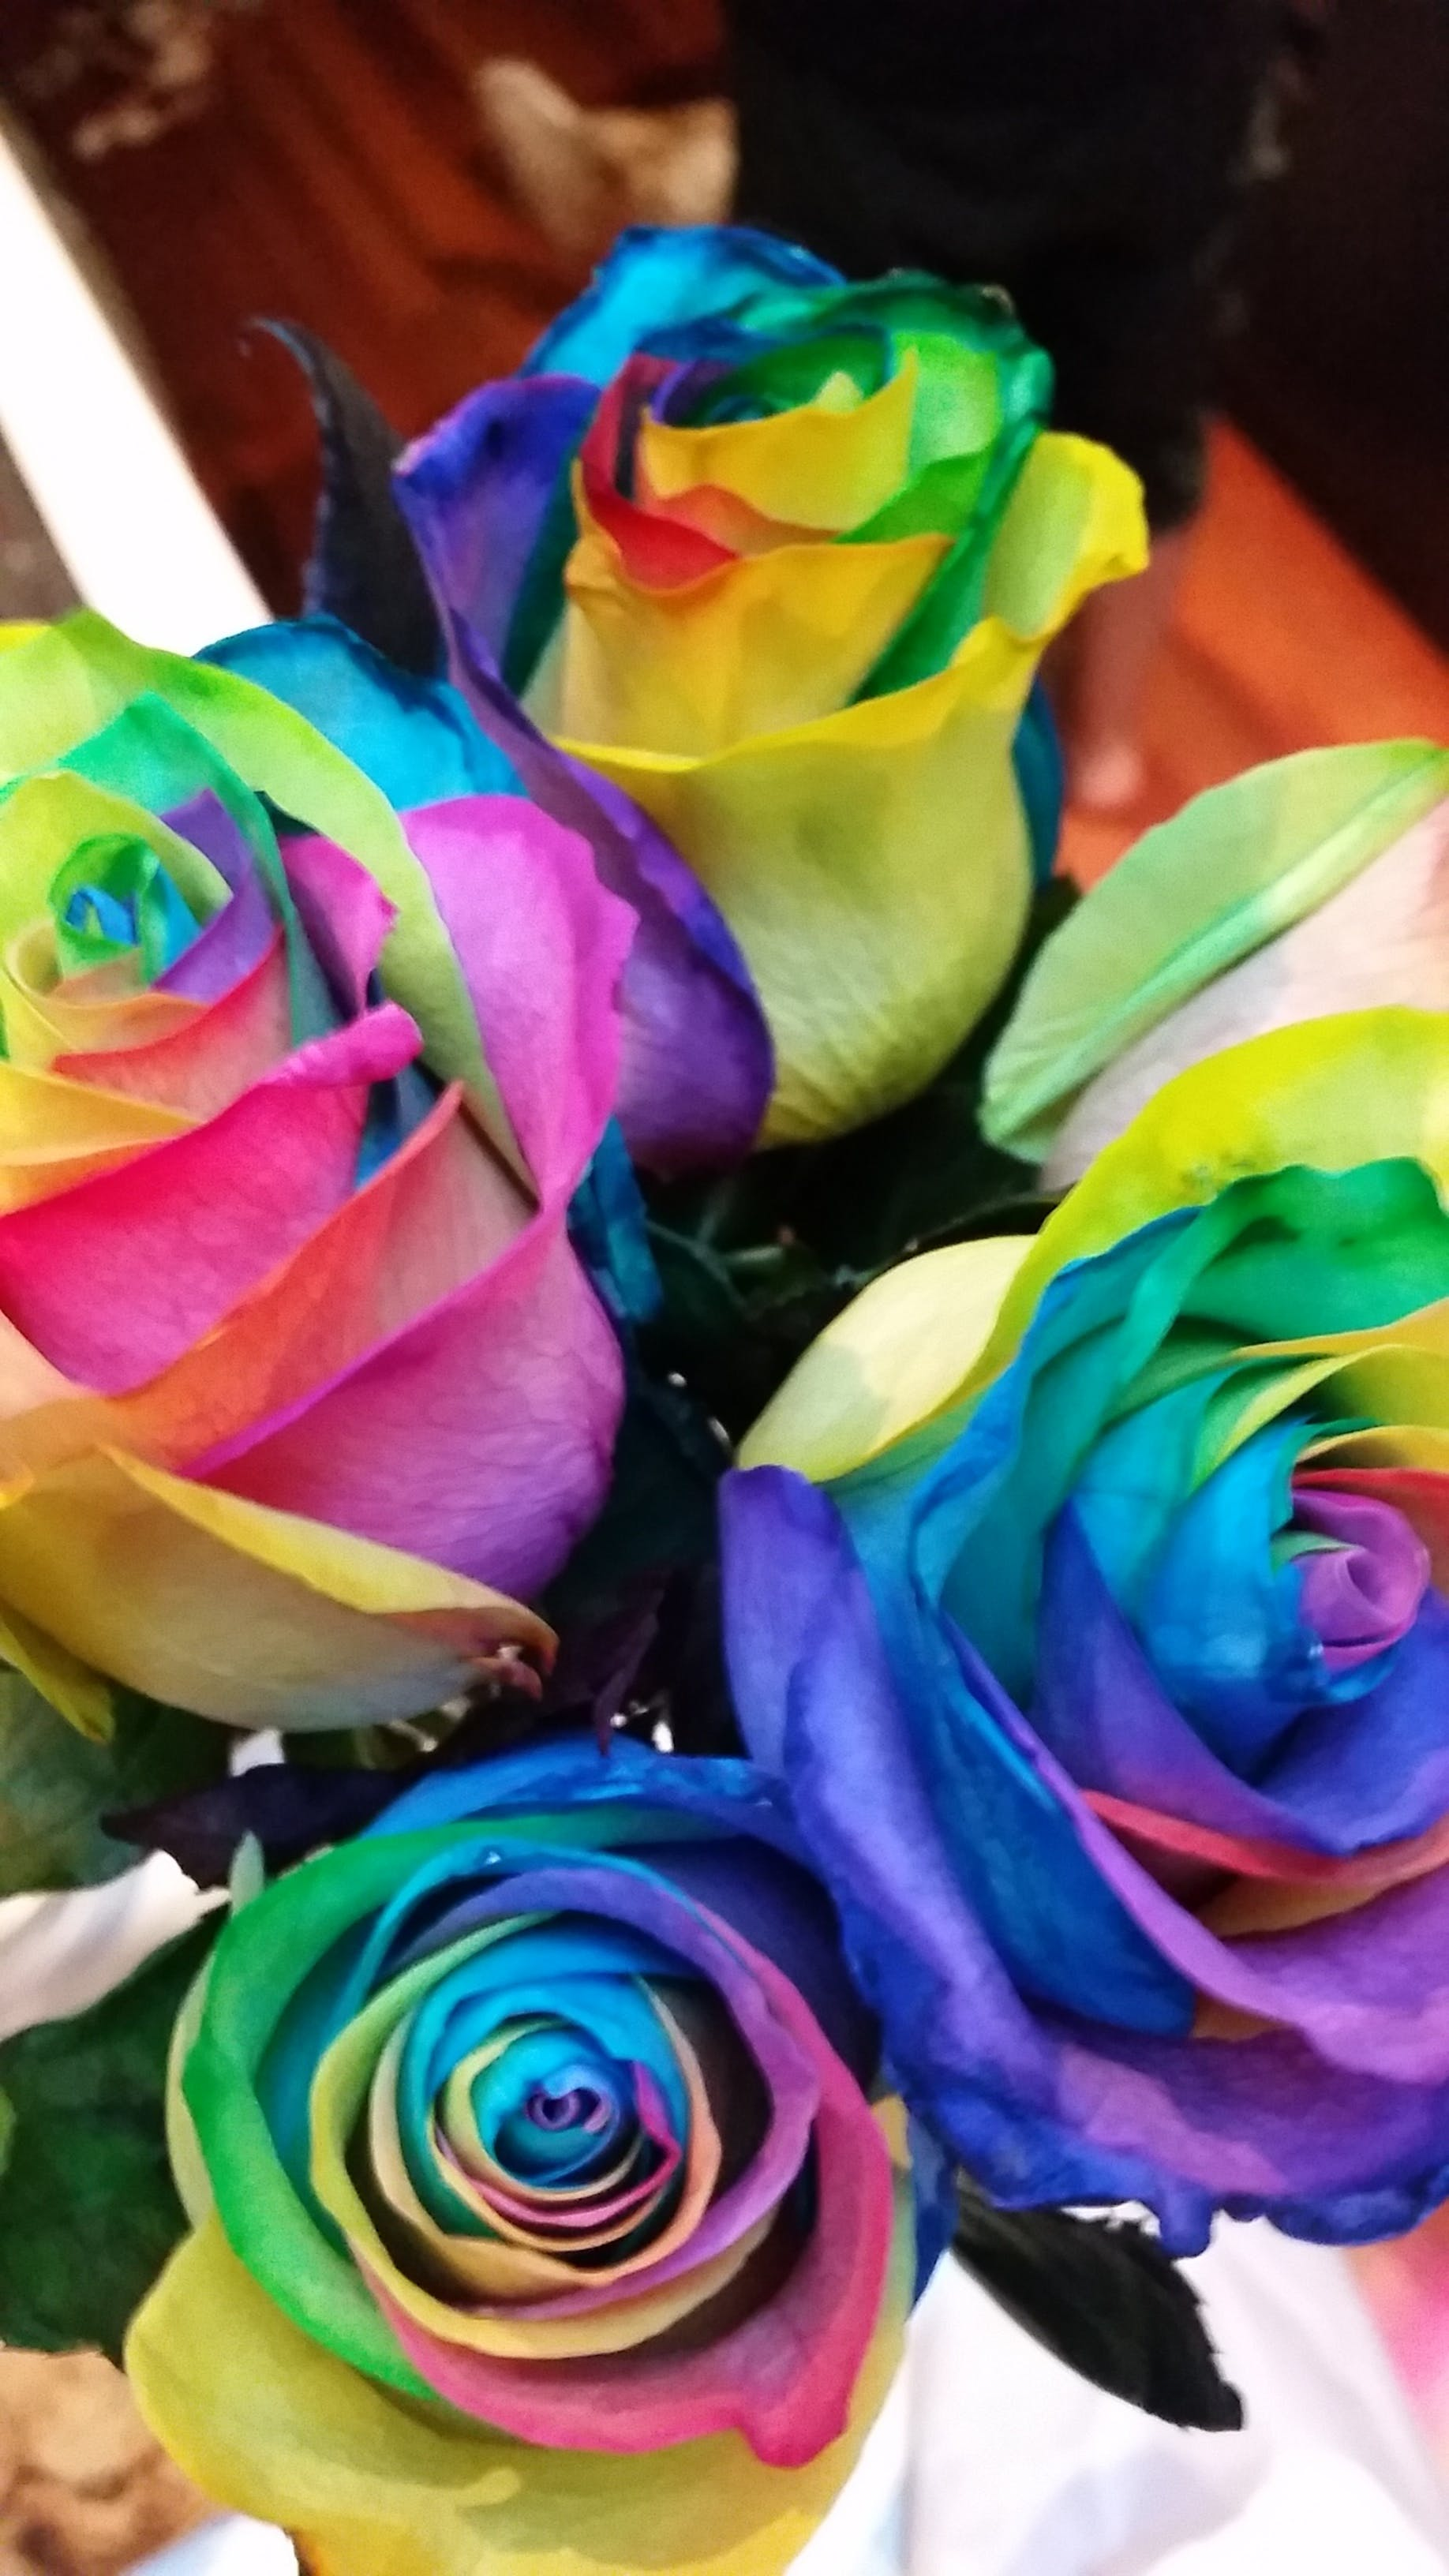 Free stock photo of Colourful flowers, Colourful roses, rainbow, Rainbow Flowers